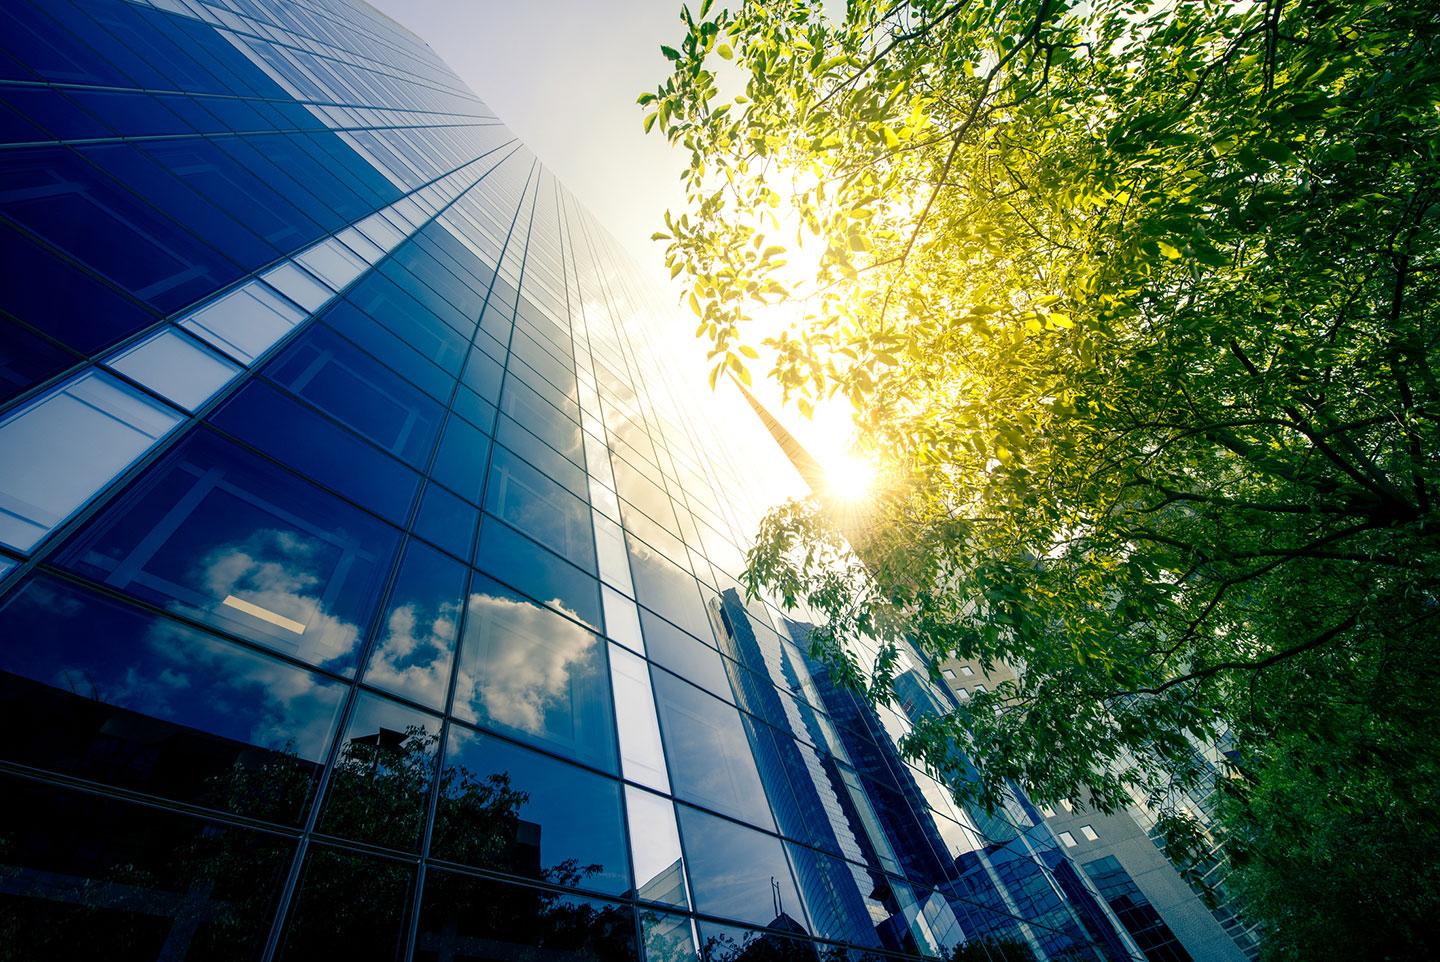 Office-skyscraper-with-tree-in-the-sun